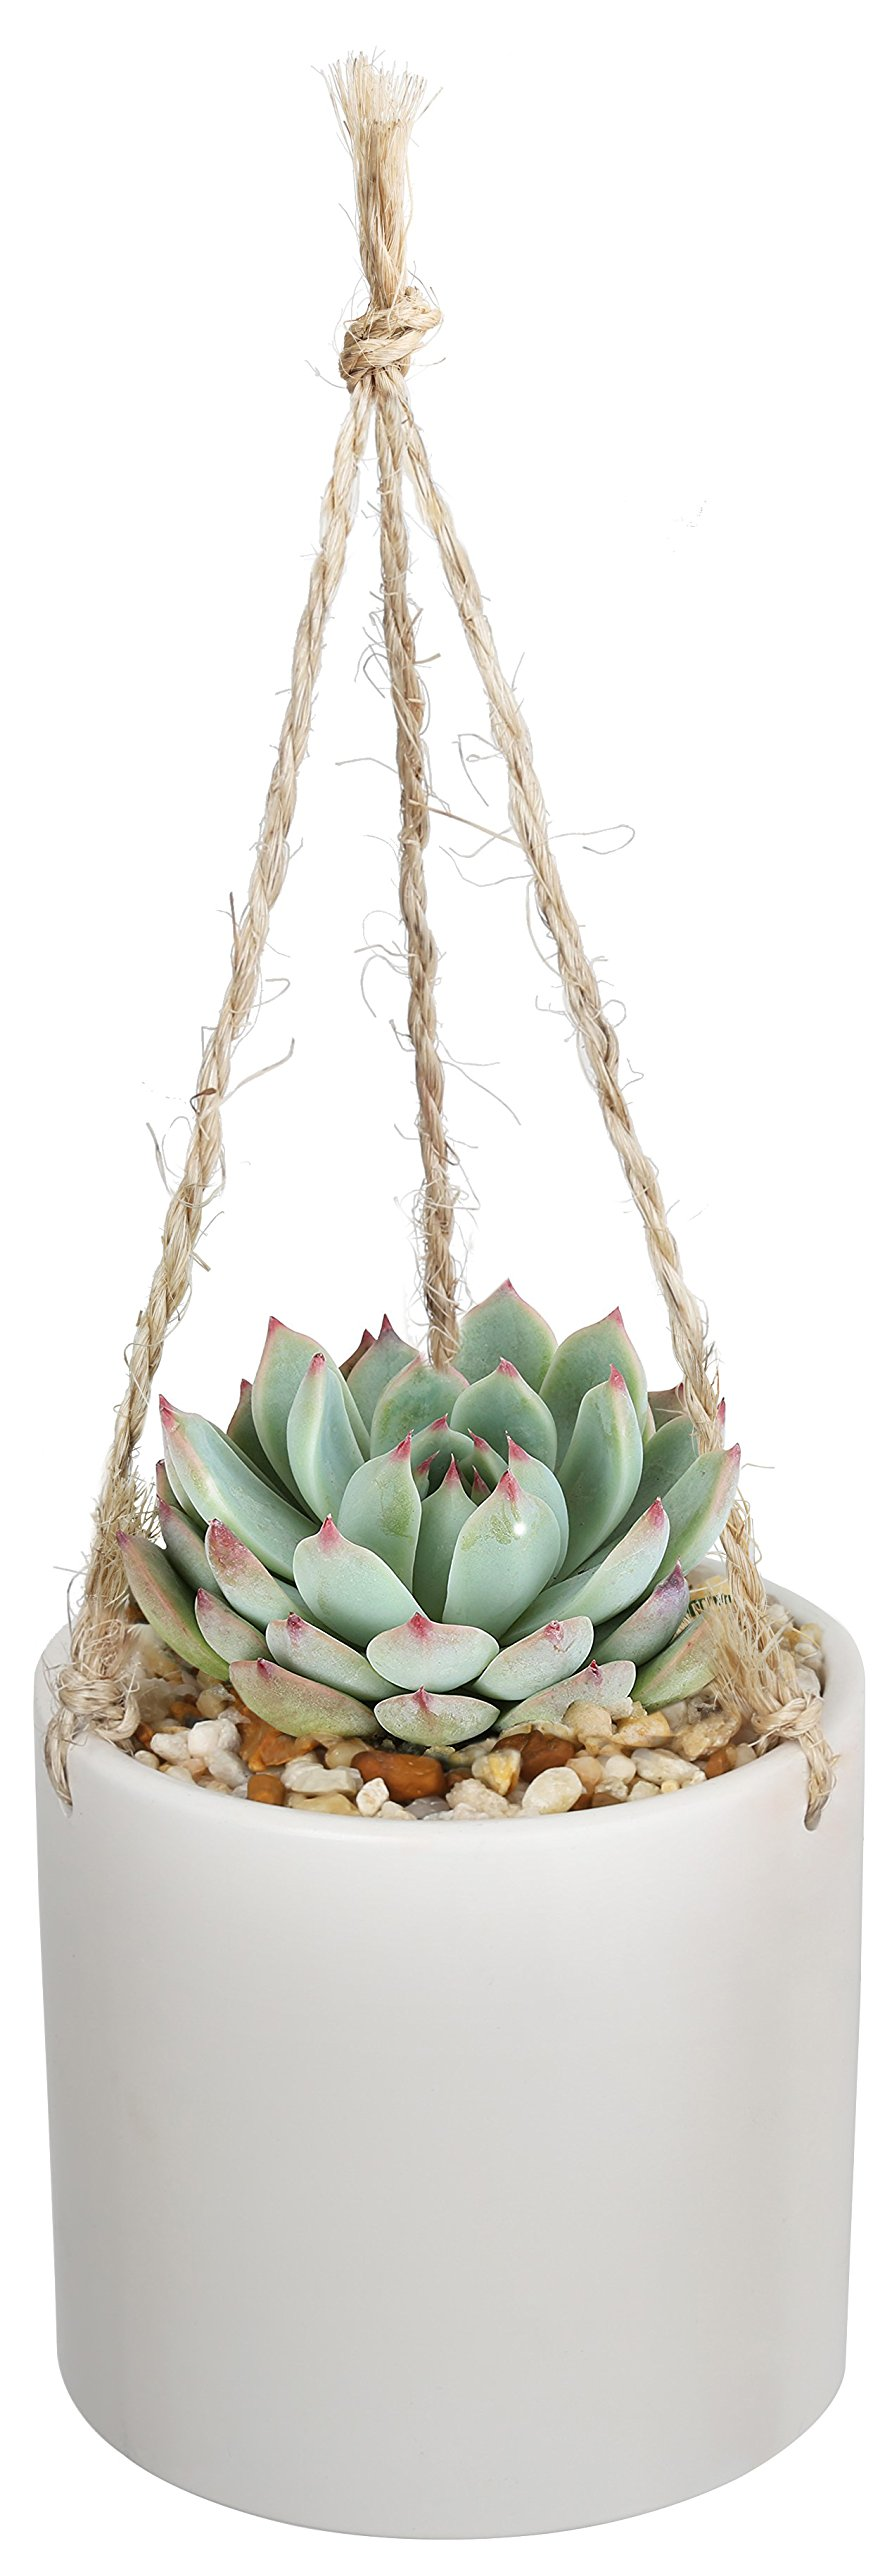 Costa Farms Live Succulent Echeveria Plant in Boho Inspired 4-Inch Ceramic Hanging Basket, Great Gift